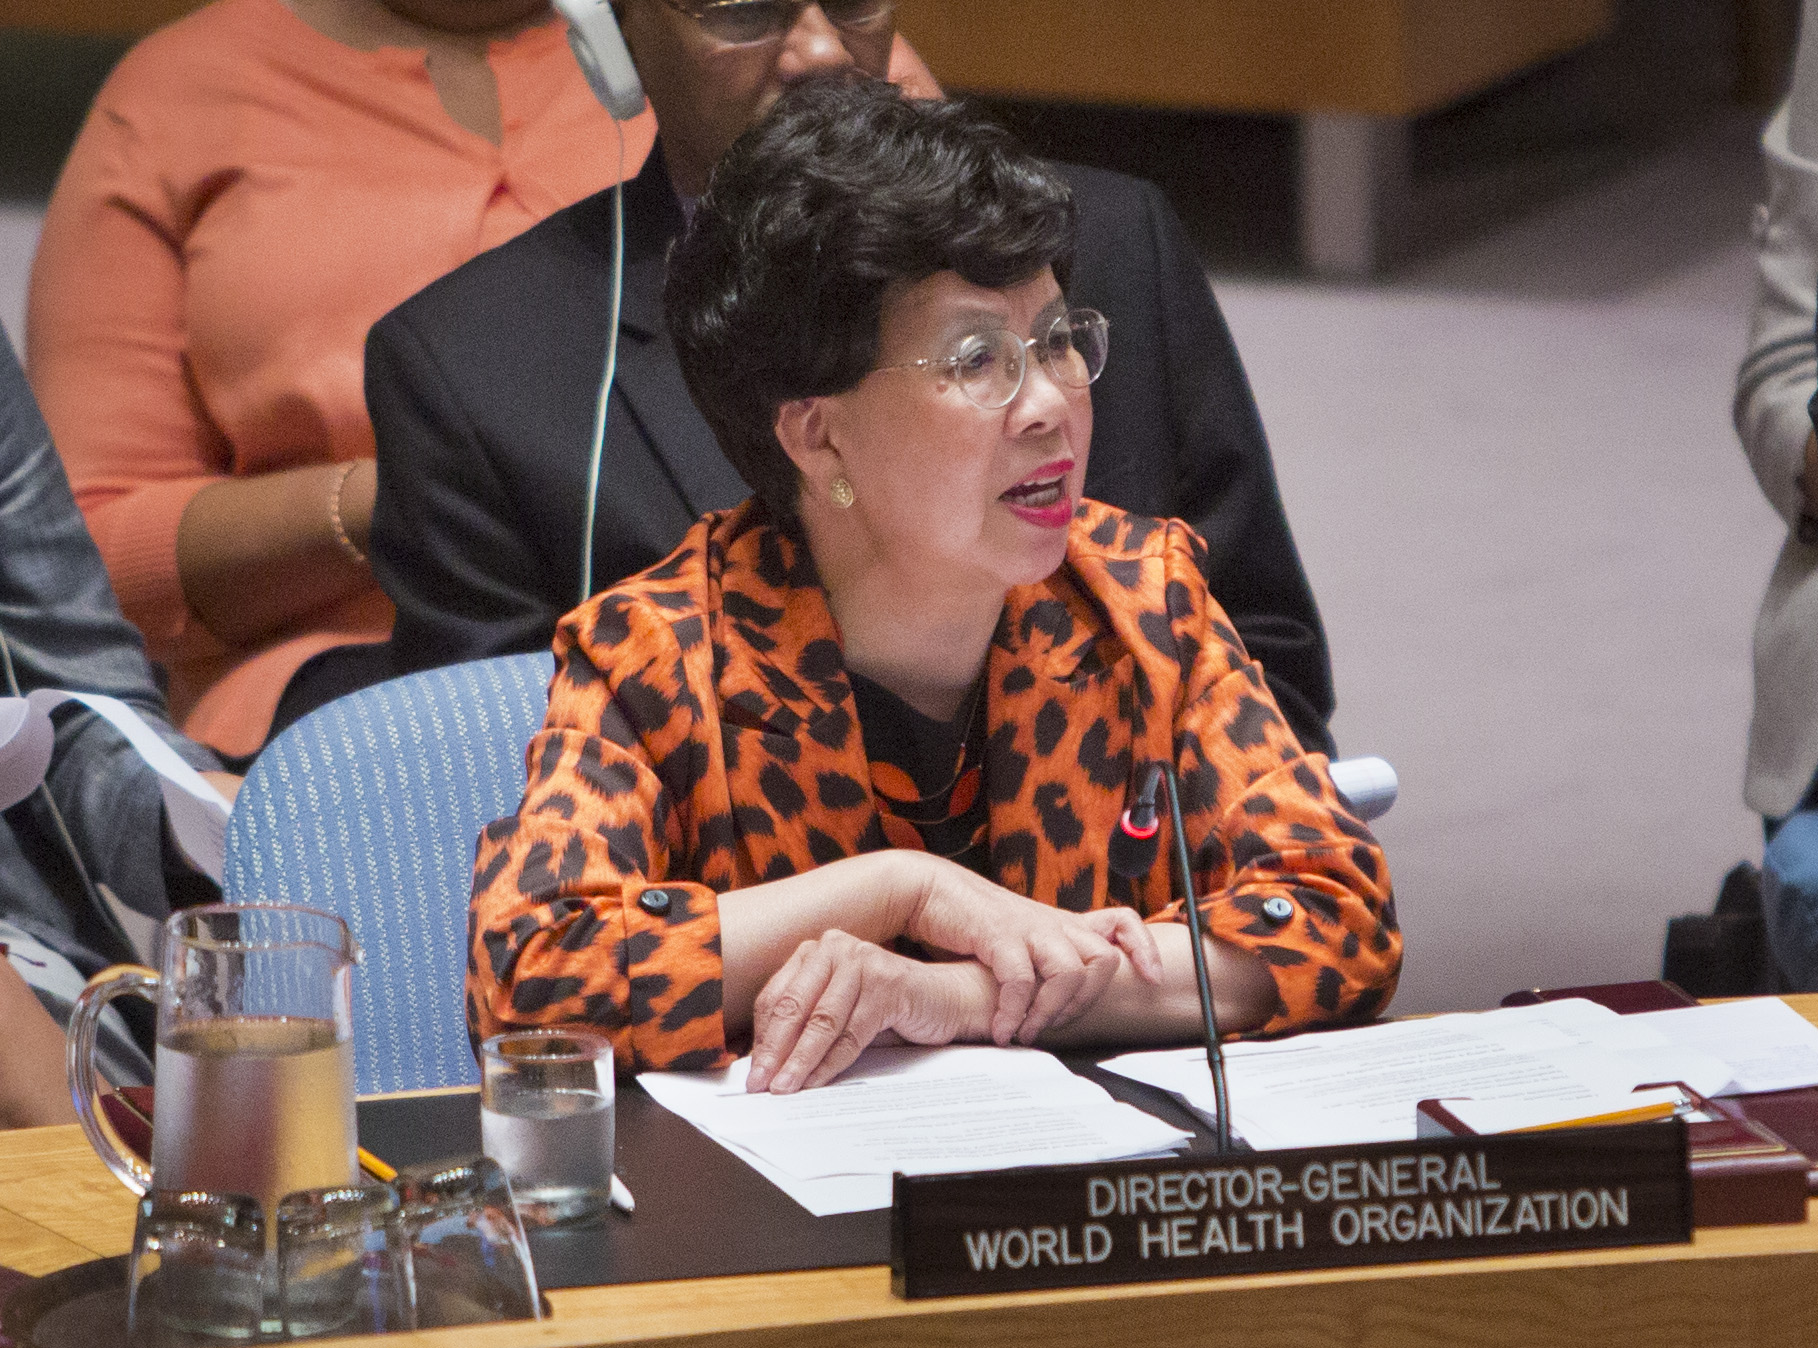 Director-General of the World Health Organization Dr Margaret Chan addresses an emergency meeting of the U.N. Security Council on Ebola, Thursday, Sept. 18, 2014.   (AP Photo/Bebeto Matthews)